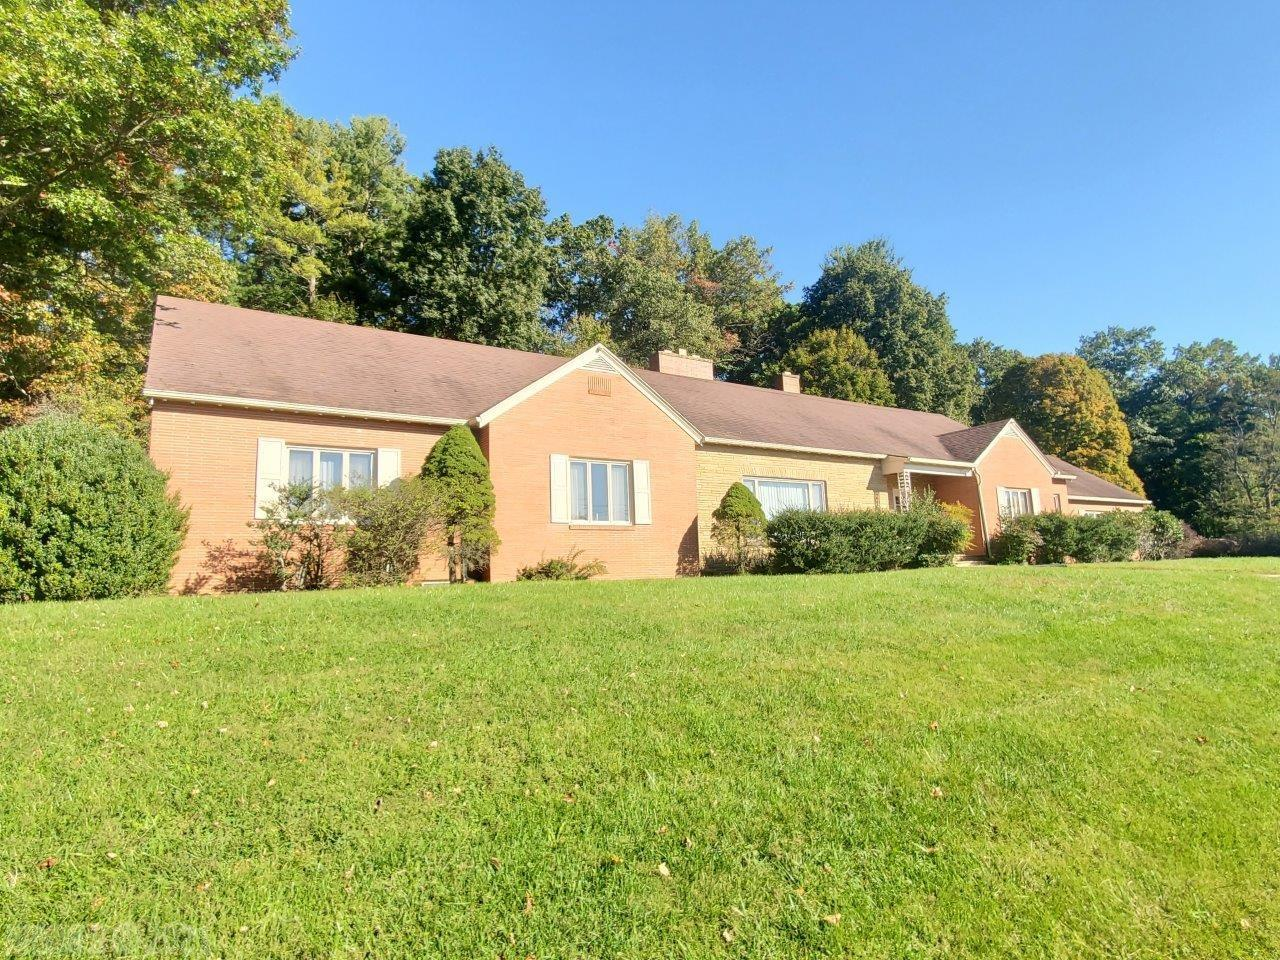 This 1950's showplace has 3 bedrooms and 2.5 bathrooms, 4 fireplaces, beautiful wood trim and floors. 3.475 Acres and paved driveway. Outdoor picnic shelter with fireplace, garden shed, playhouse.